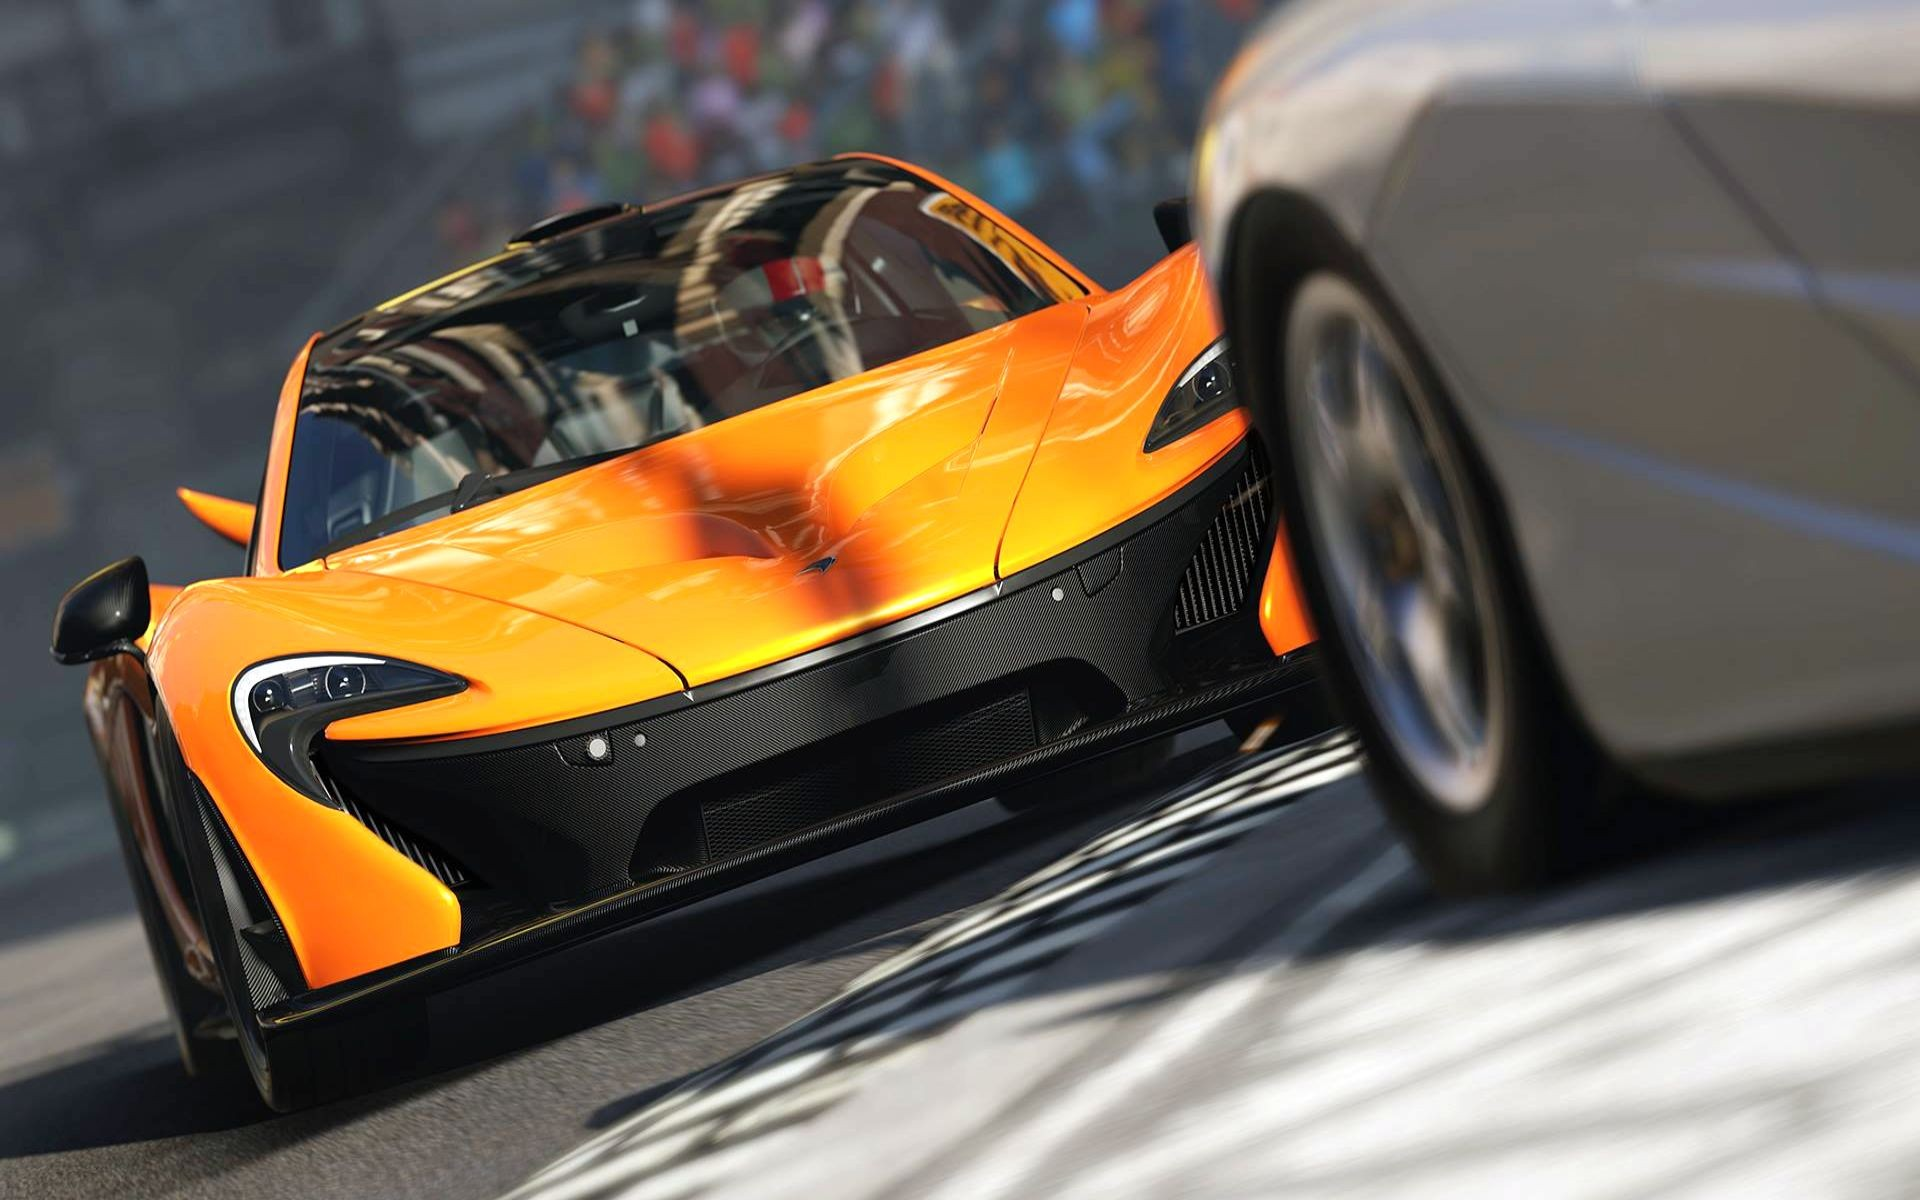 Video Games Cars Speed Mclaren P1 Xbox One Forza